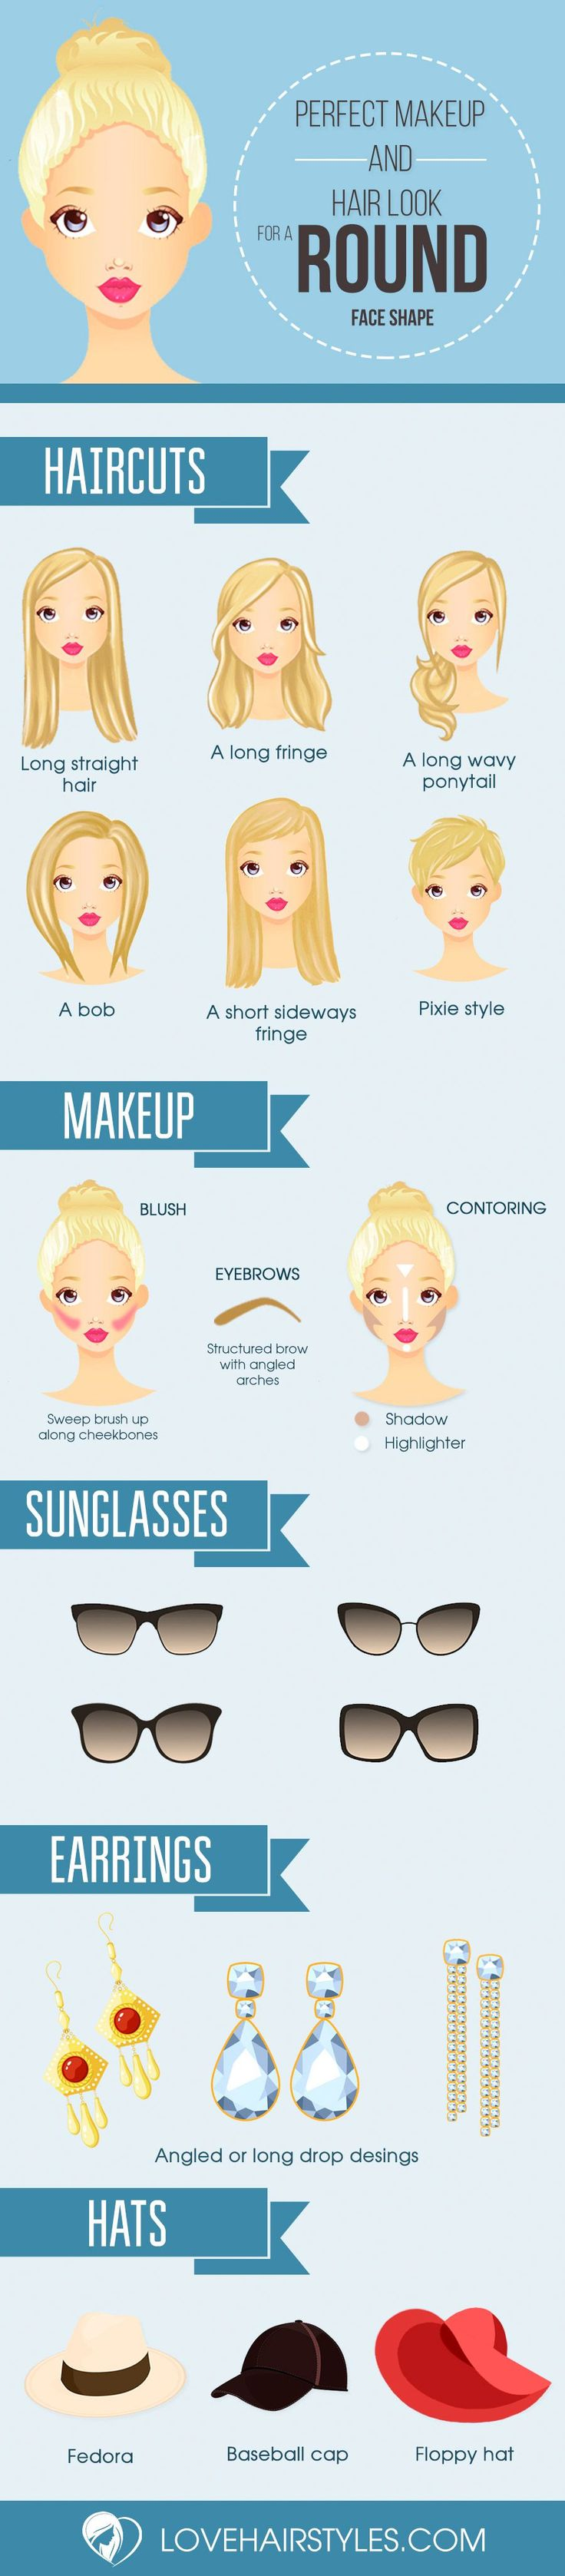 Try These Best Hairstyles and Makeup for Round Faces. |> More Info: | makeupexclusiv.blogspot.com |